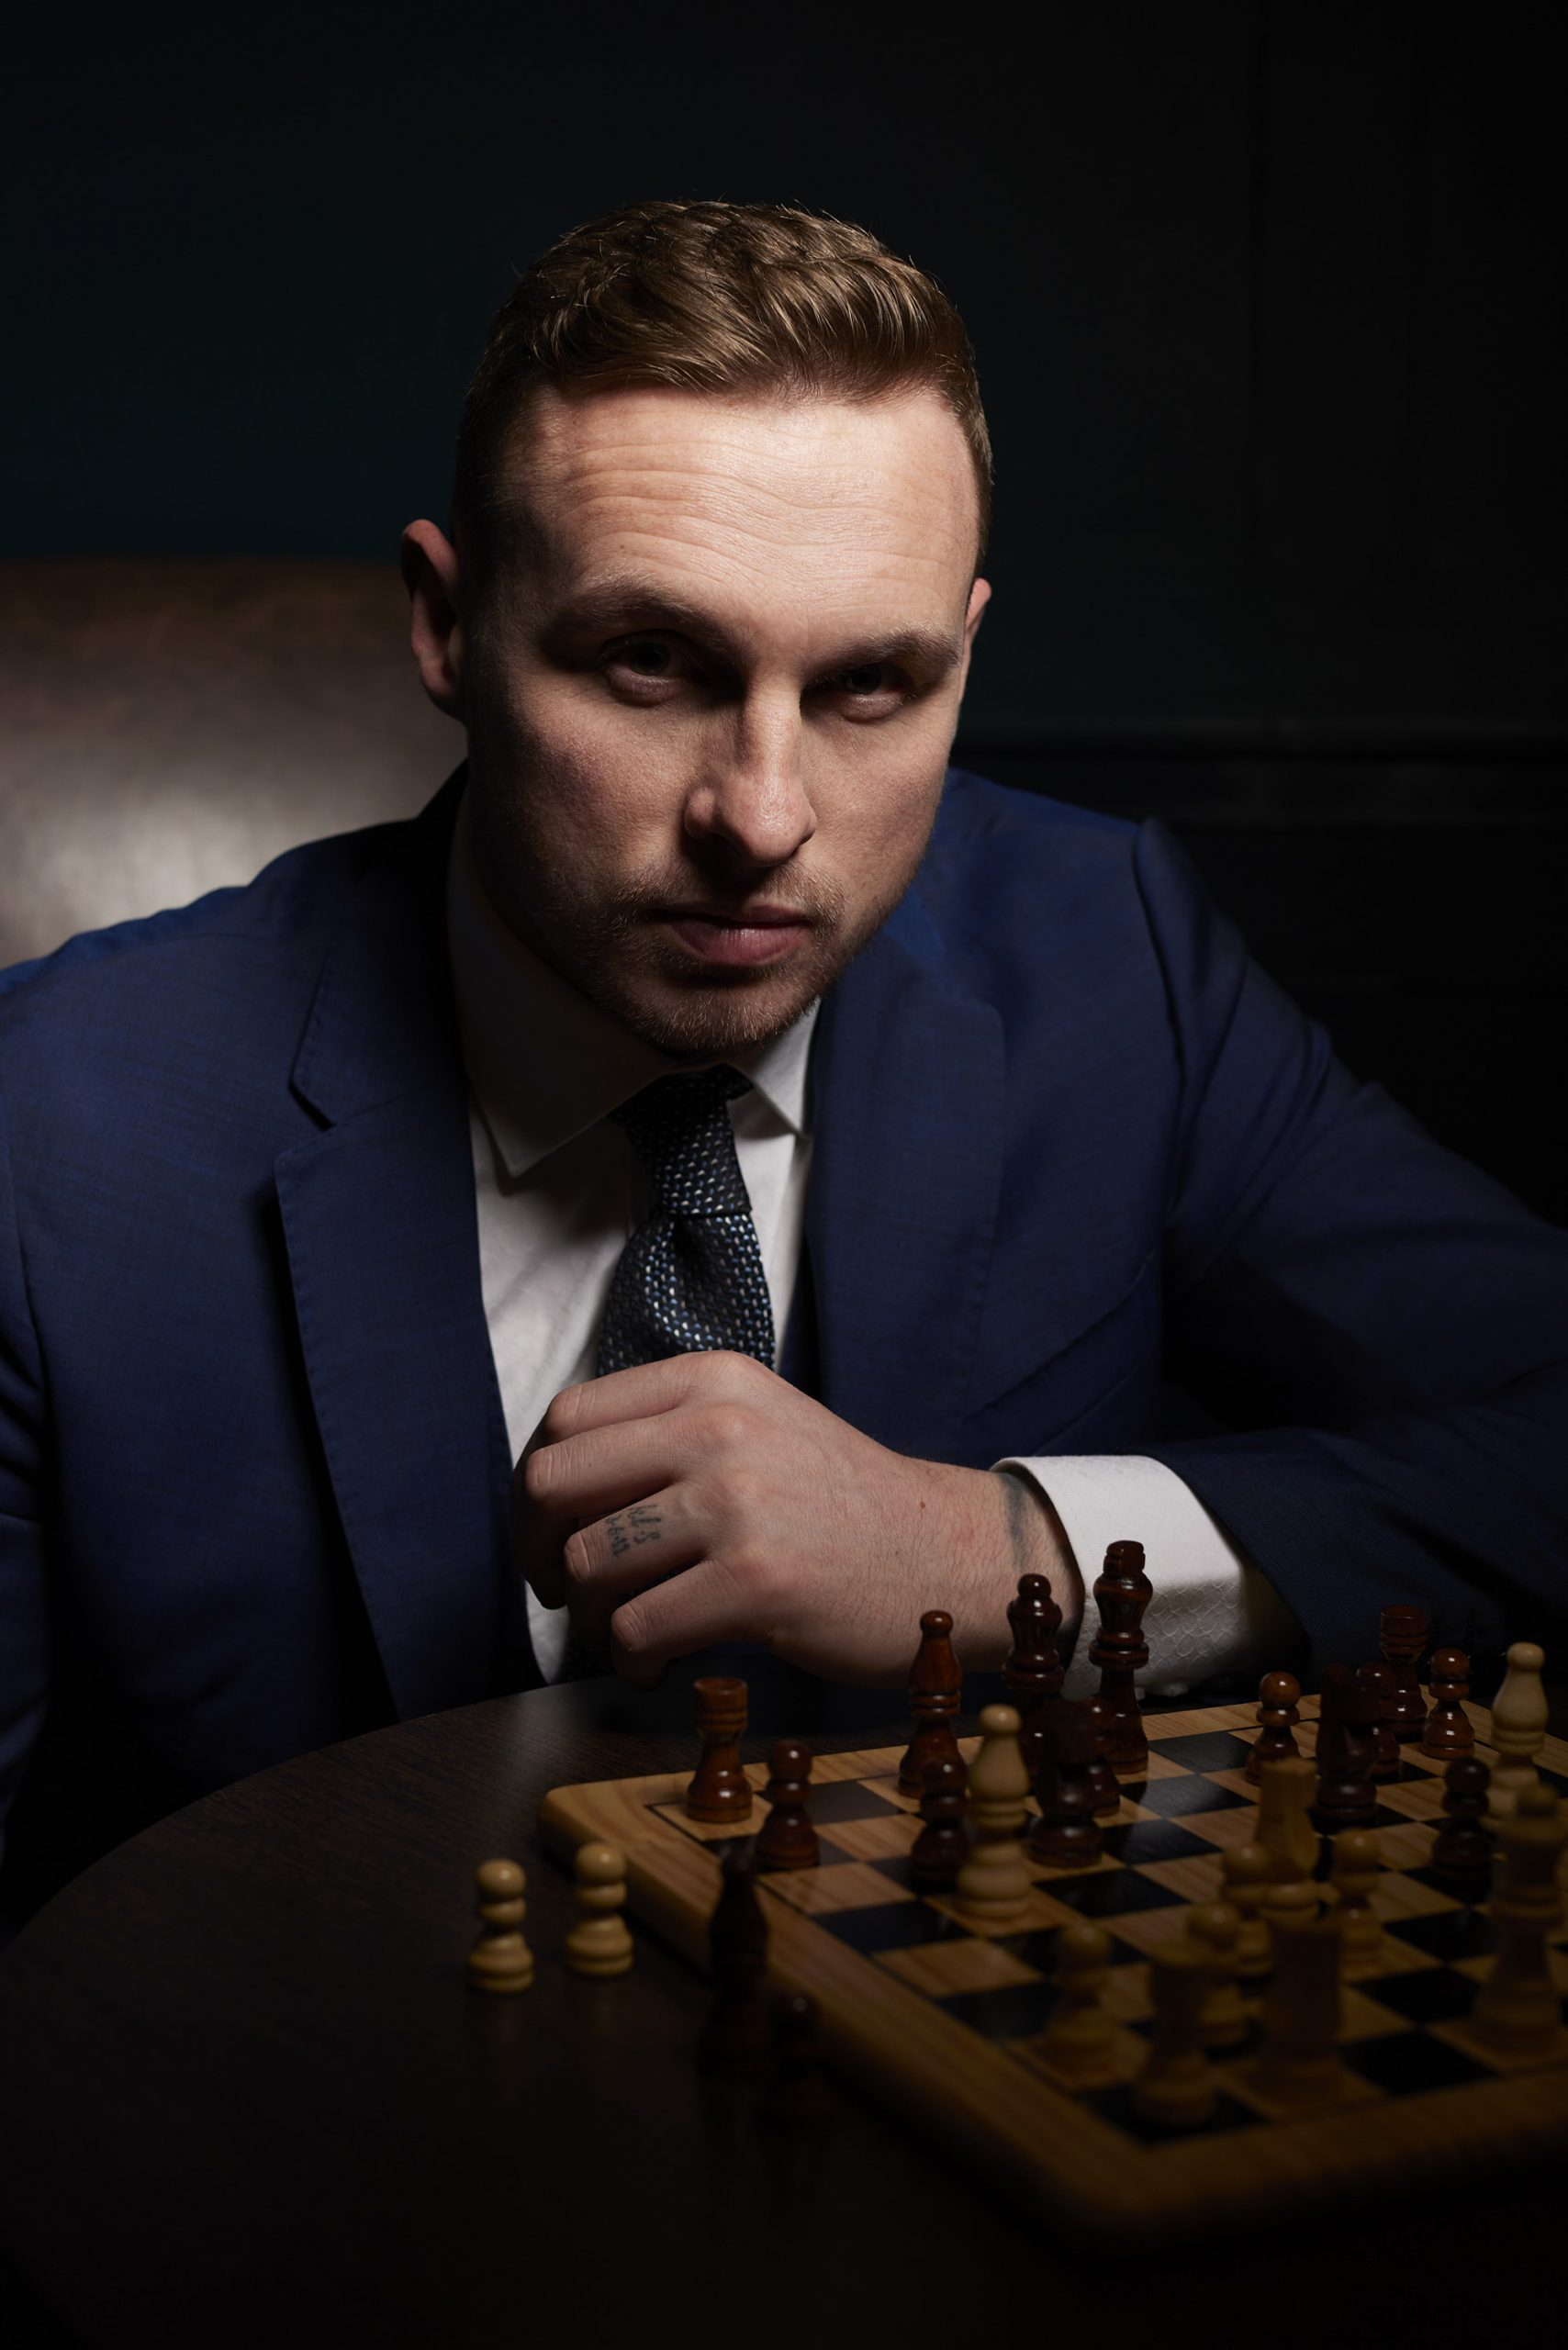 David Stockdale wearing a blue suit and playing chess